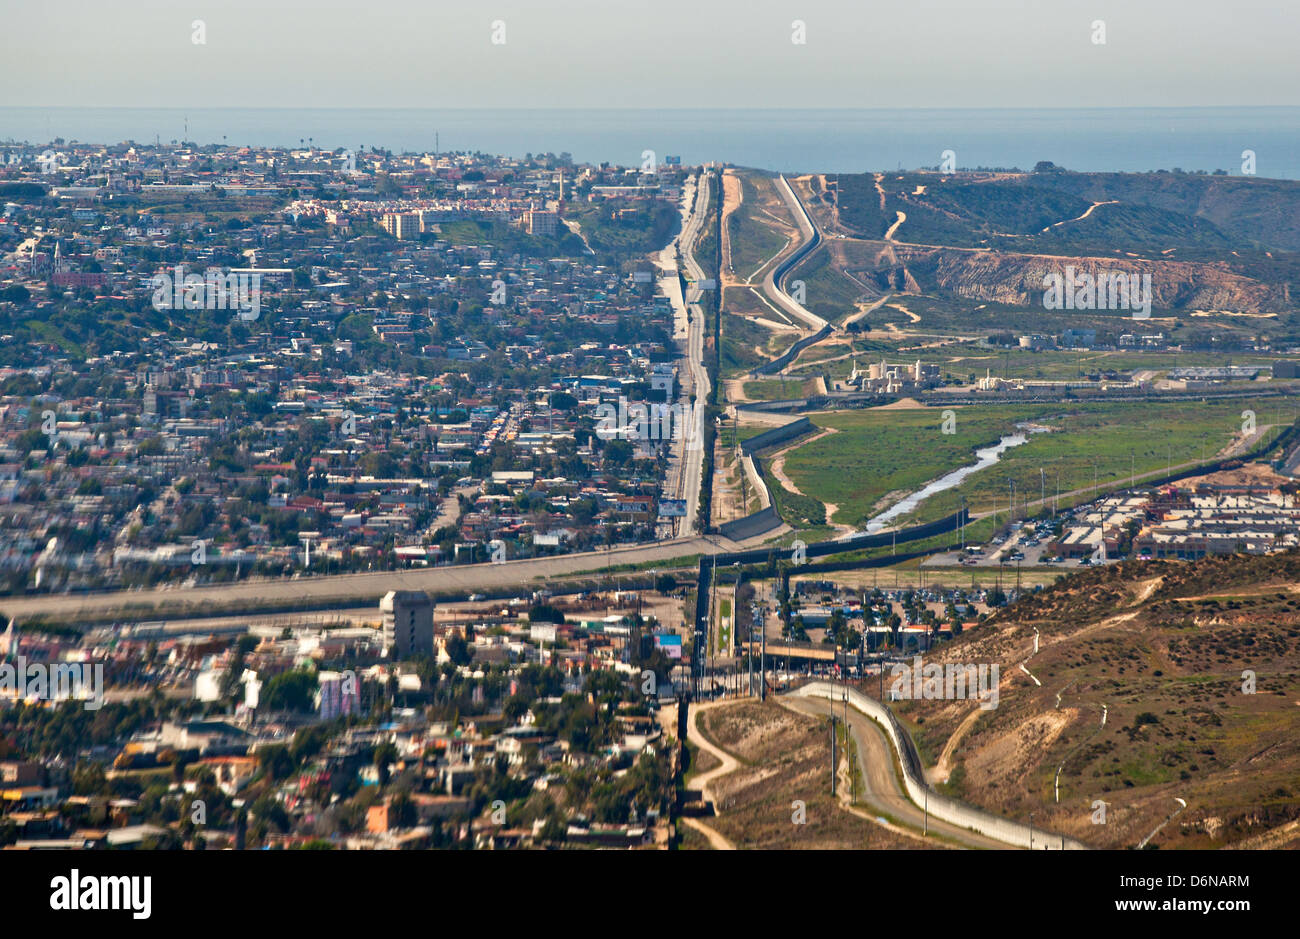 Aerial view of the border fence separating San Diego and Tijuana February 17, 2012 in San Diego, CA Stock Photo